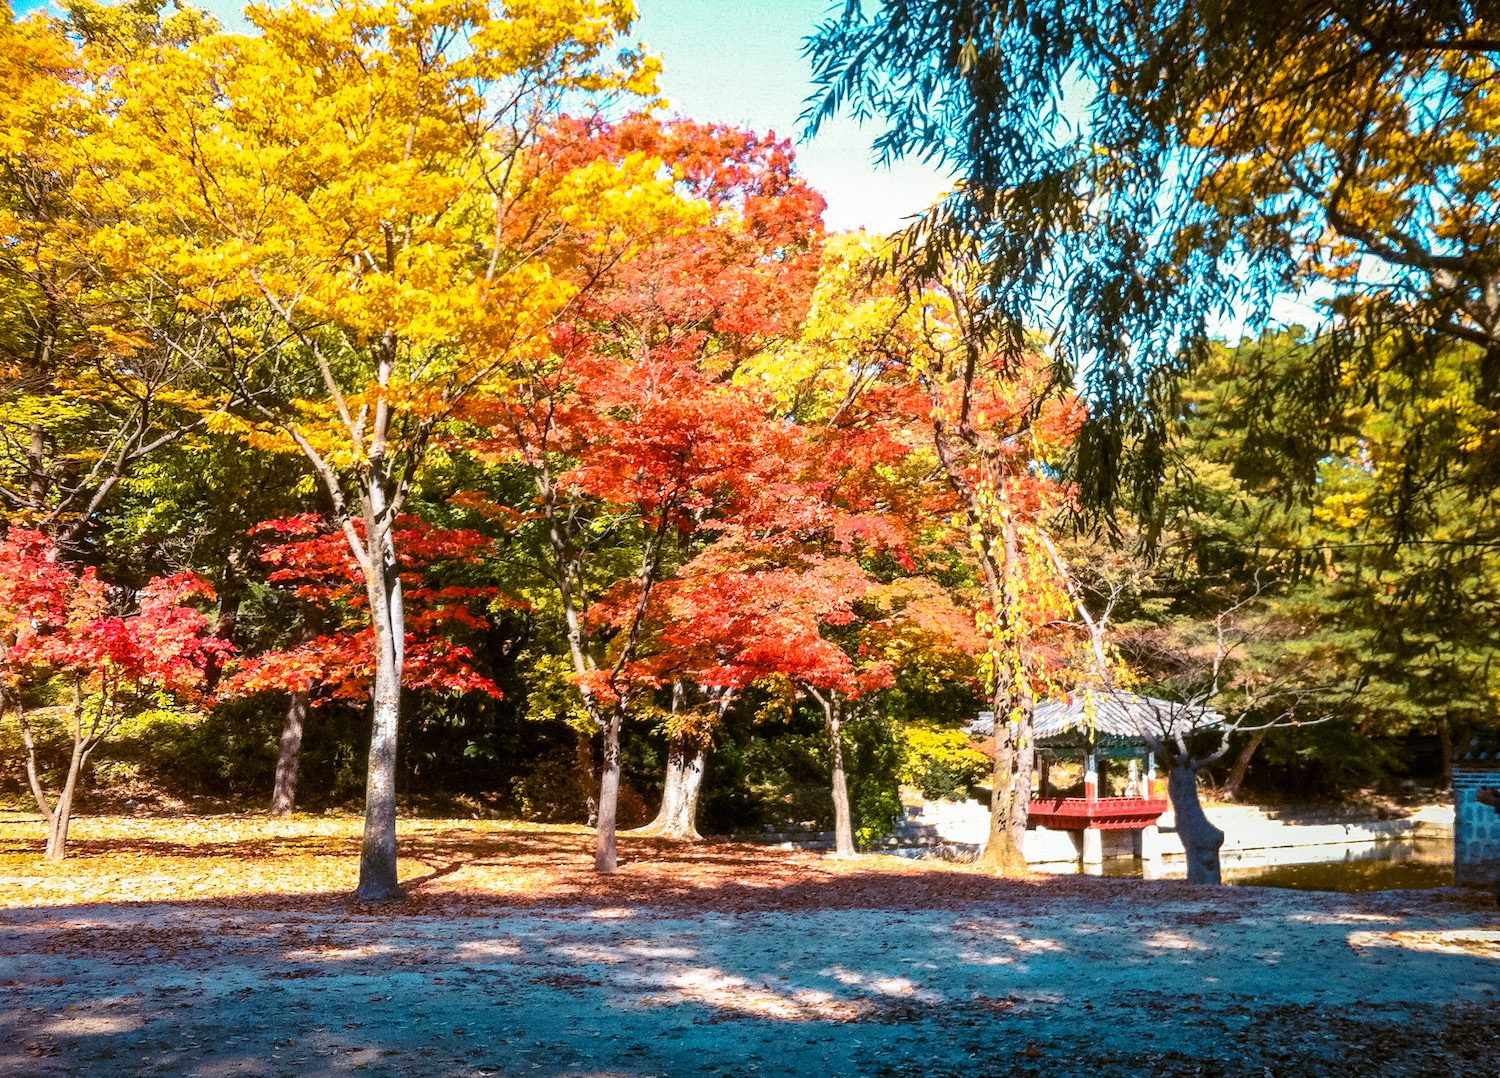 changdeokgung palace in autumn